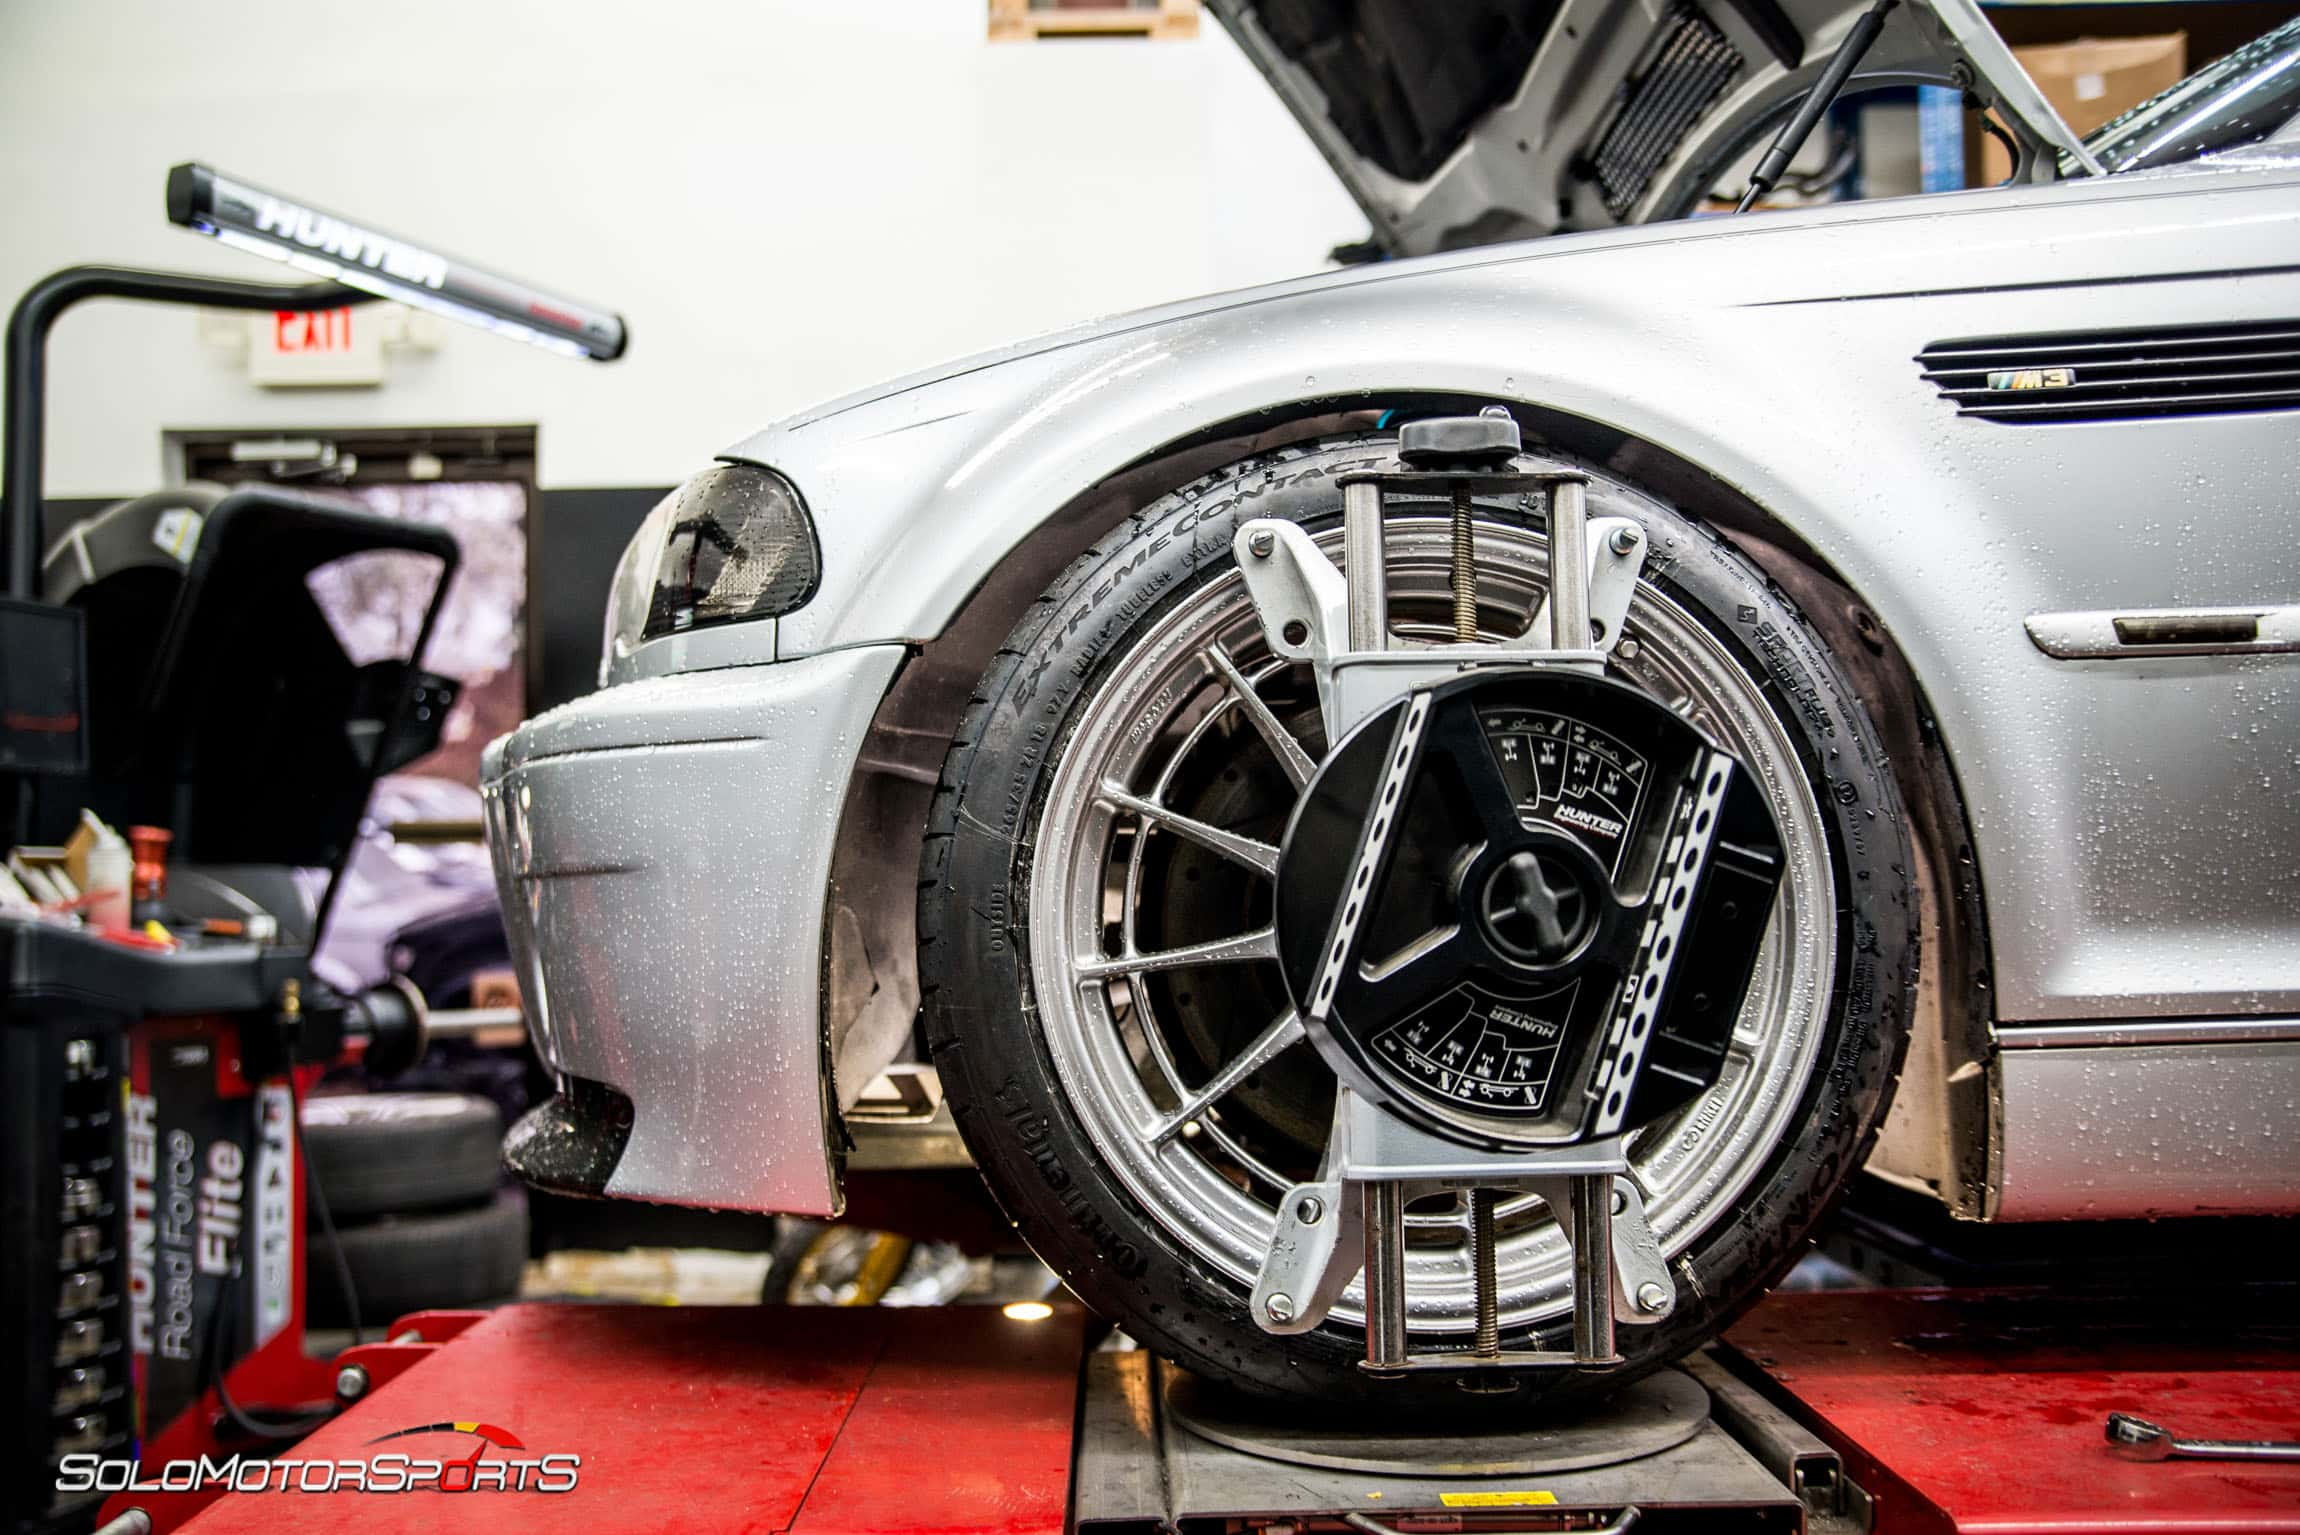 wheel alignment wheel balance corner balance suspension setup road force tire balance normal driving annually race setup track setup road setup audi bmw ferrari lamborghini land rover range rover volvo jaguar mclaren mercedes mercedes benz mini mini cooper porsche volkswagen vw